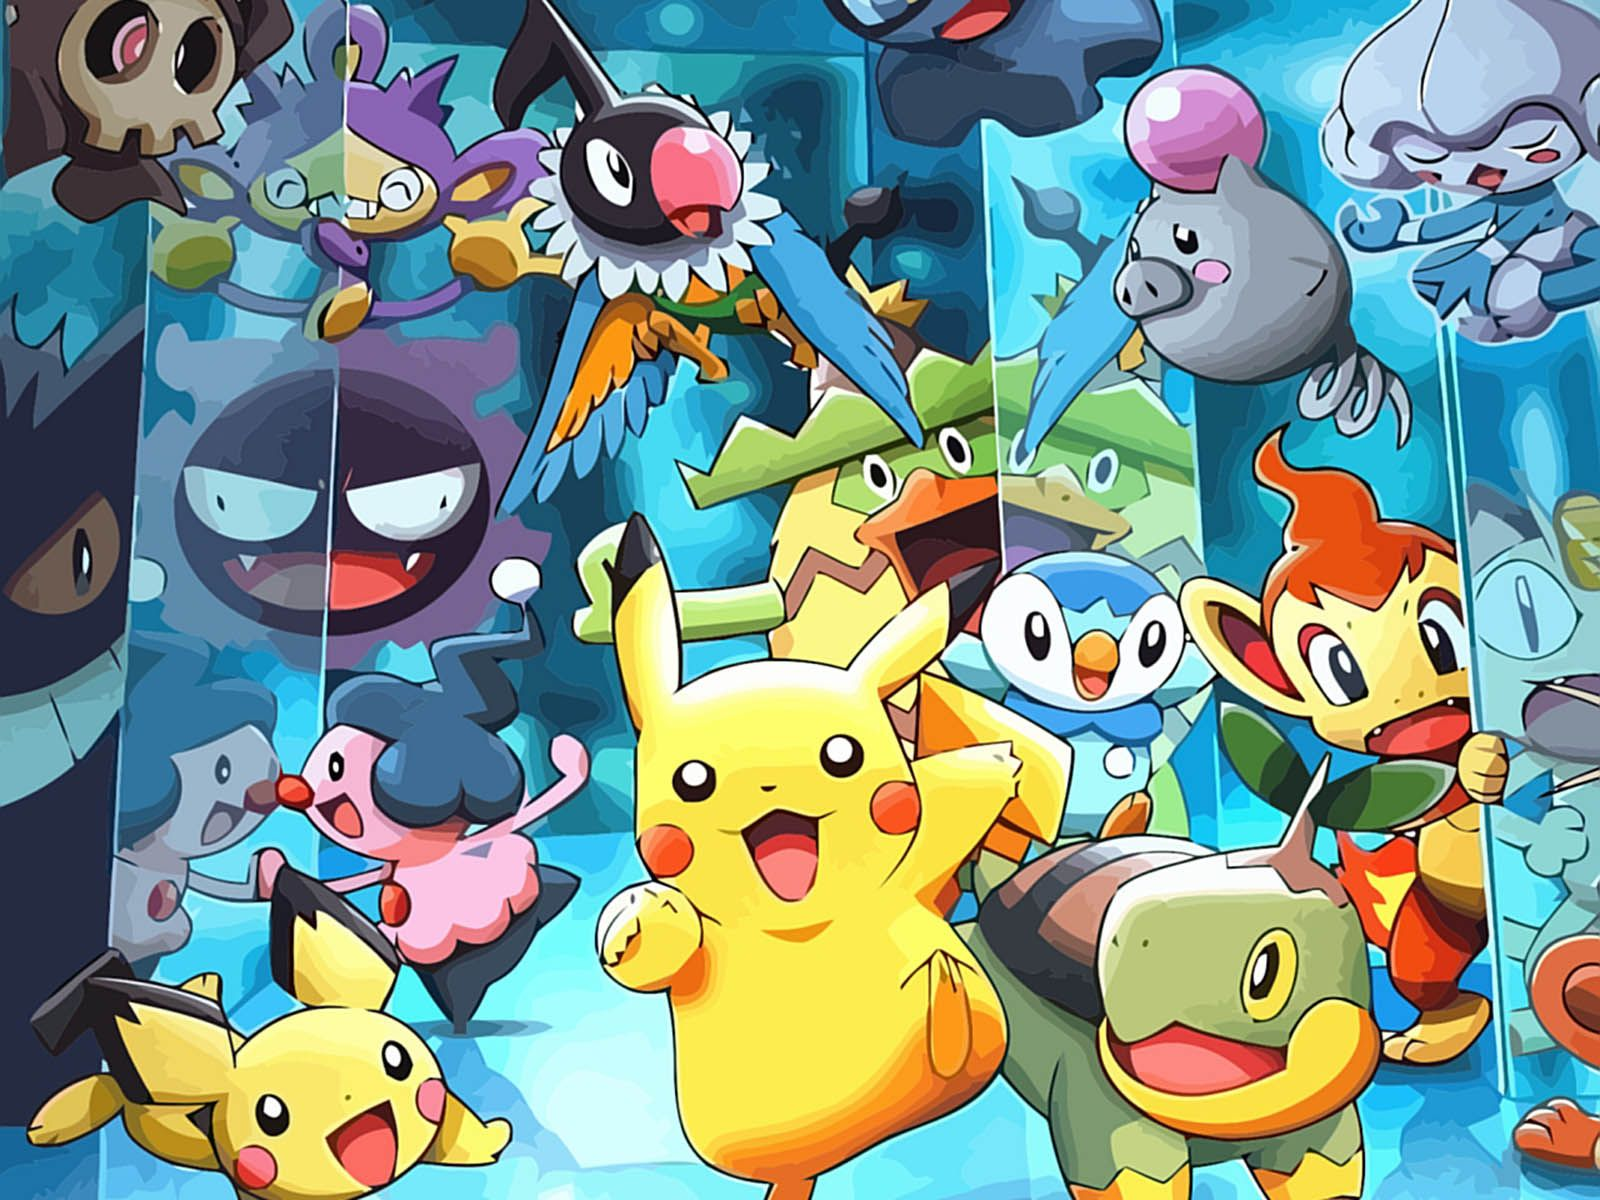 Wallpaper download pokemon - Pokemon 400 Pxiels Wide Picks Pokemon Hd Wallpaper 01 Download Wallpicshd